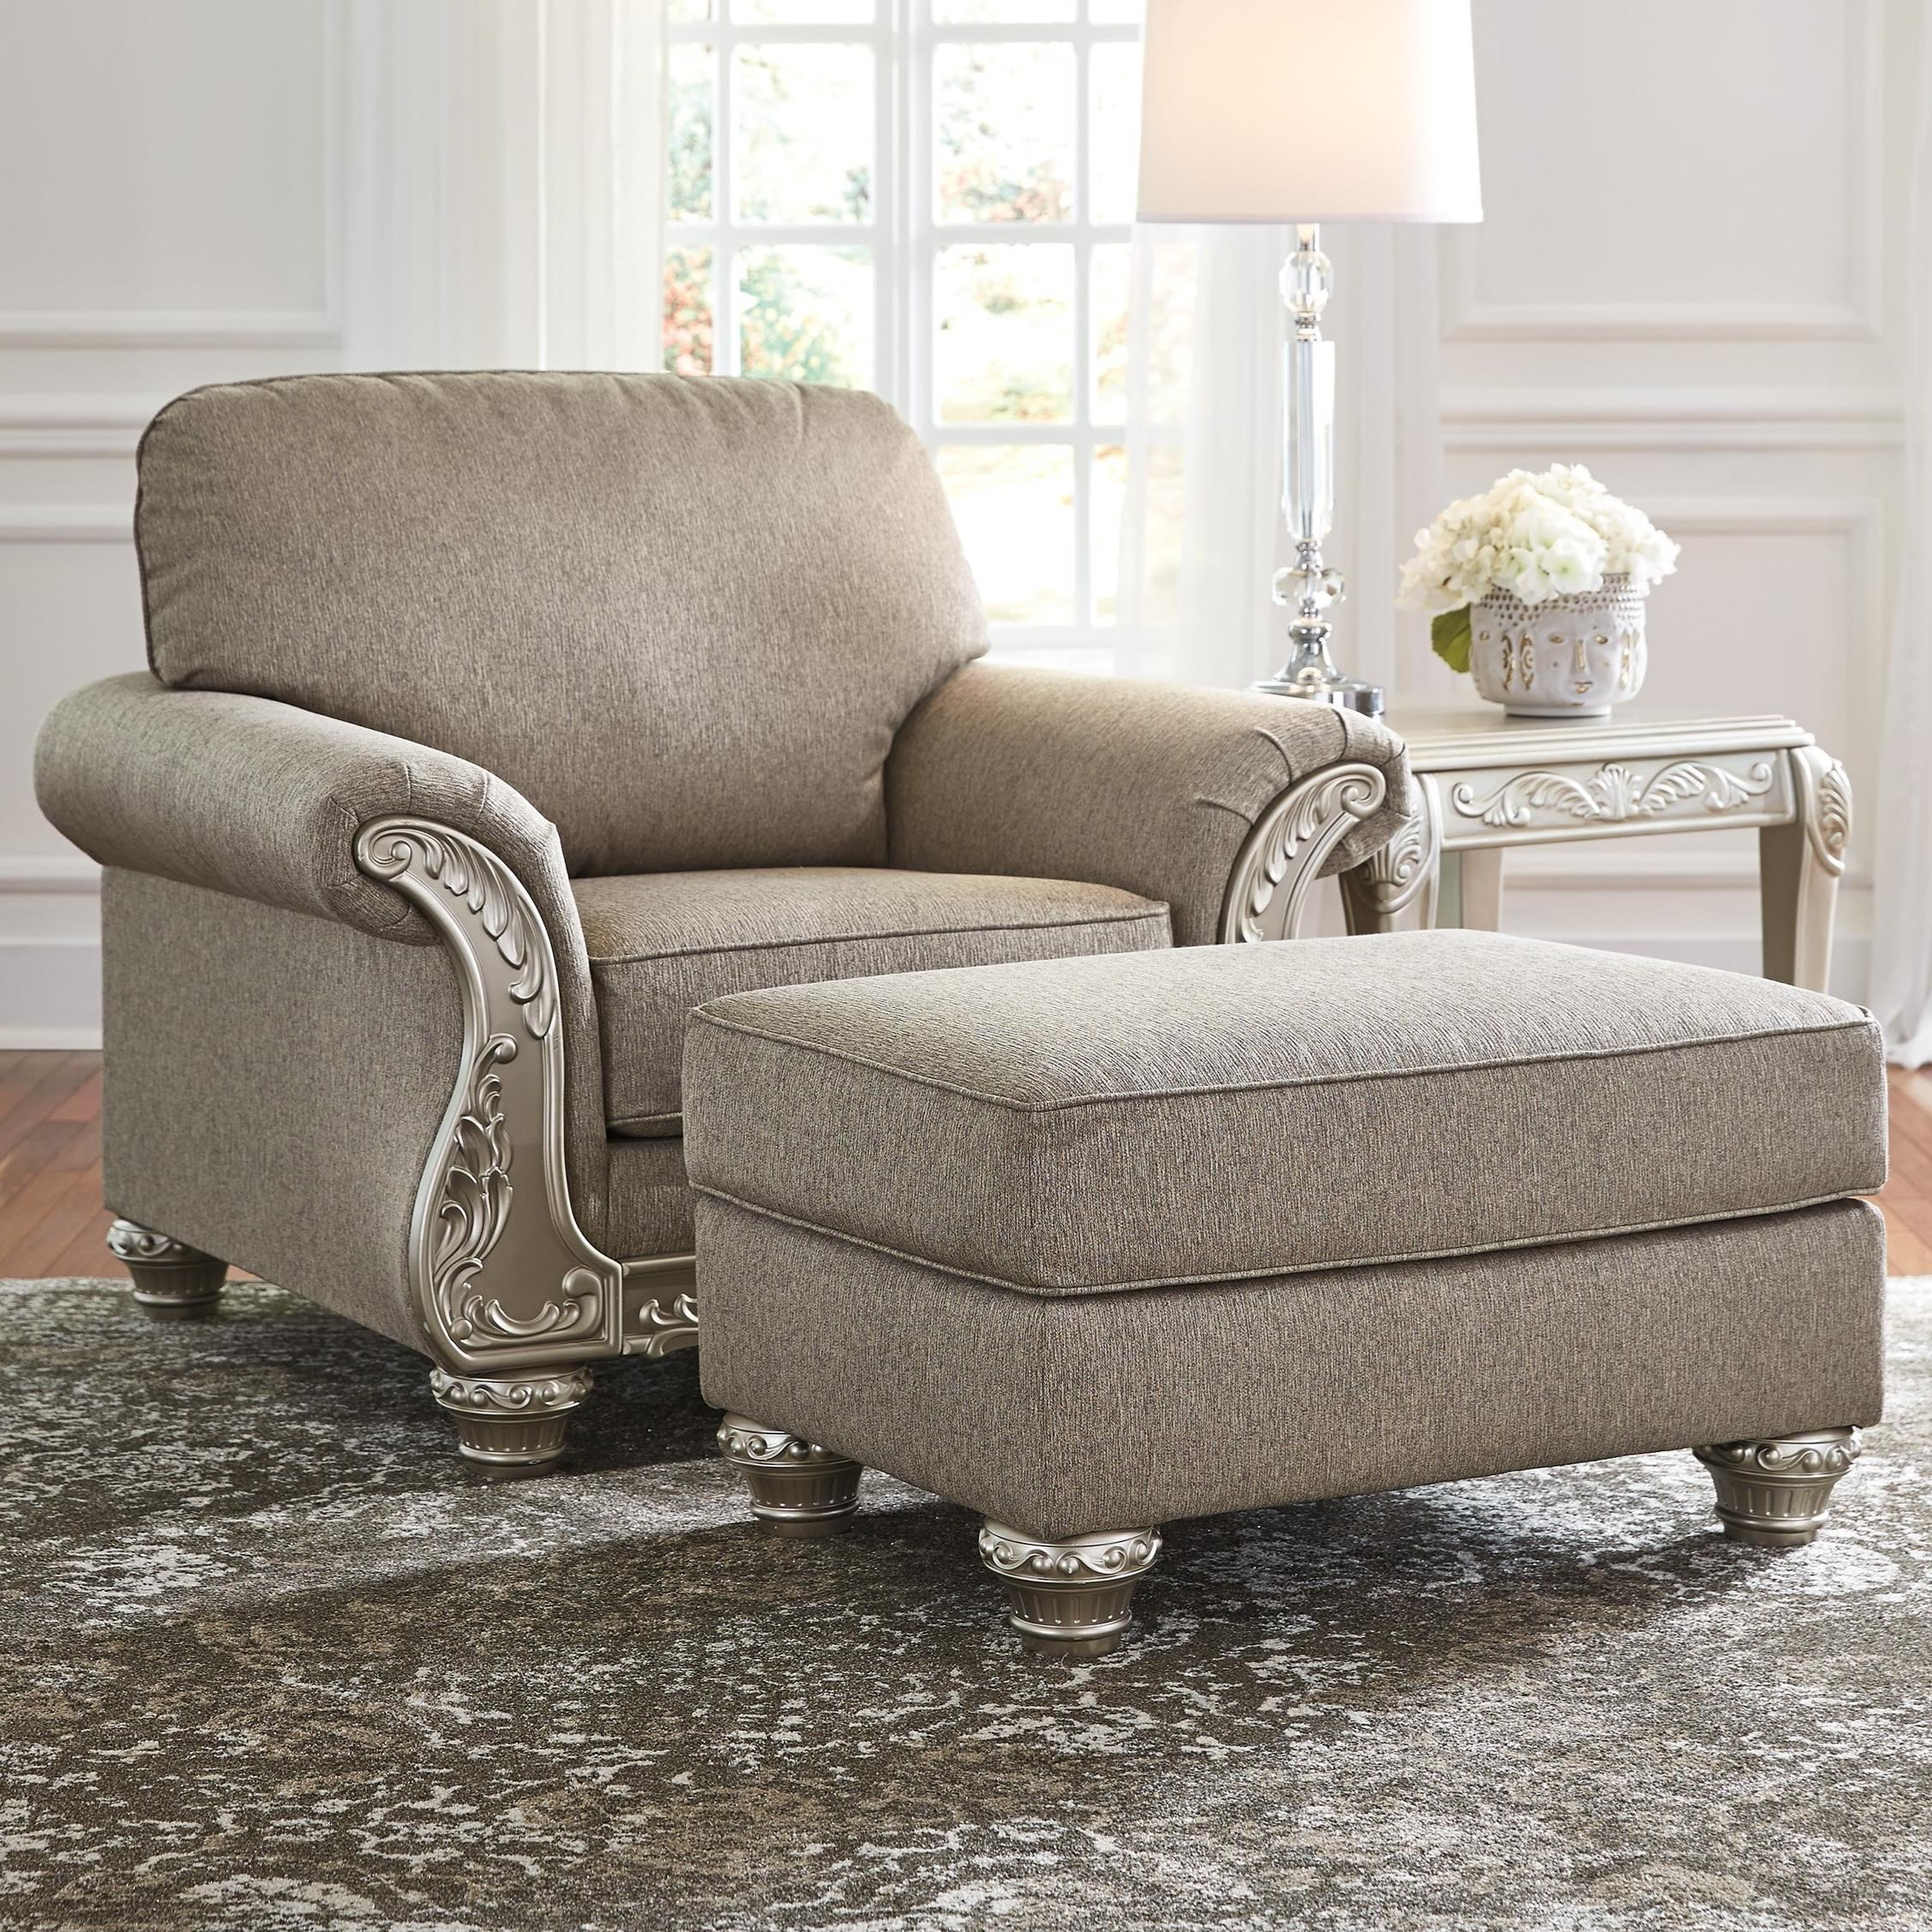 Signature Design by Ashley Gailian Chair & Ottoman - Item Number: 1690120+14